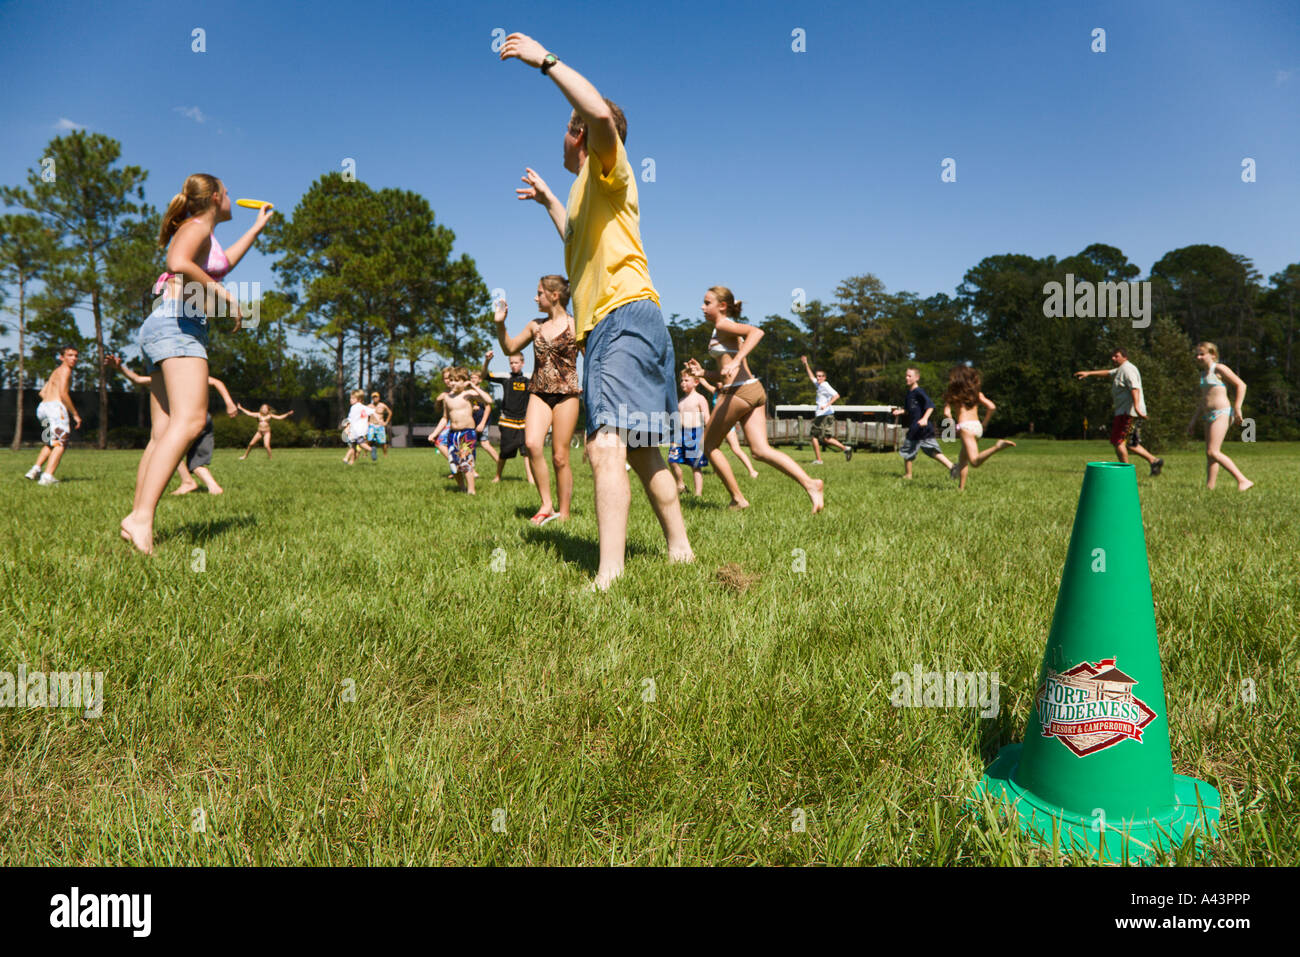 Guests play ultimate Frisbee organized activity at Fort Wilderness in Walt Disney World - Stock Image